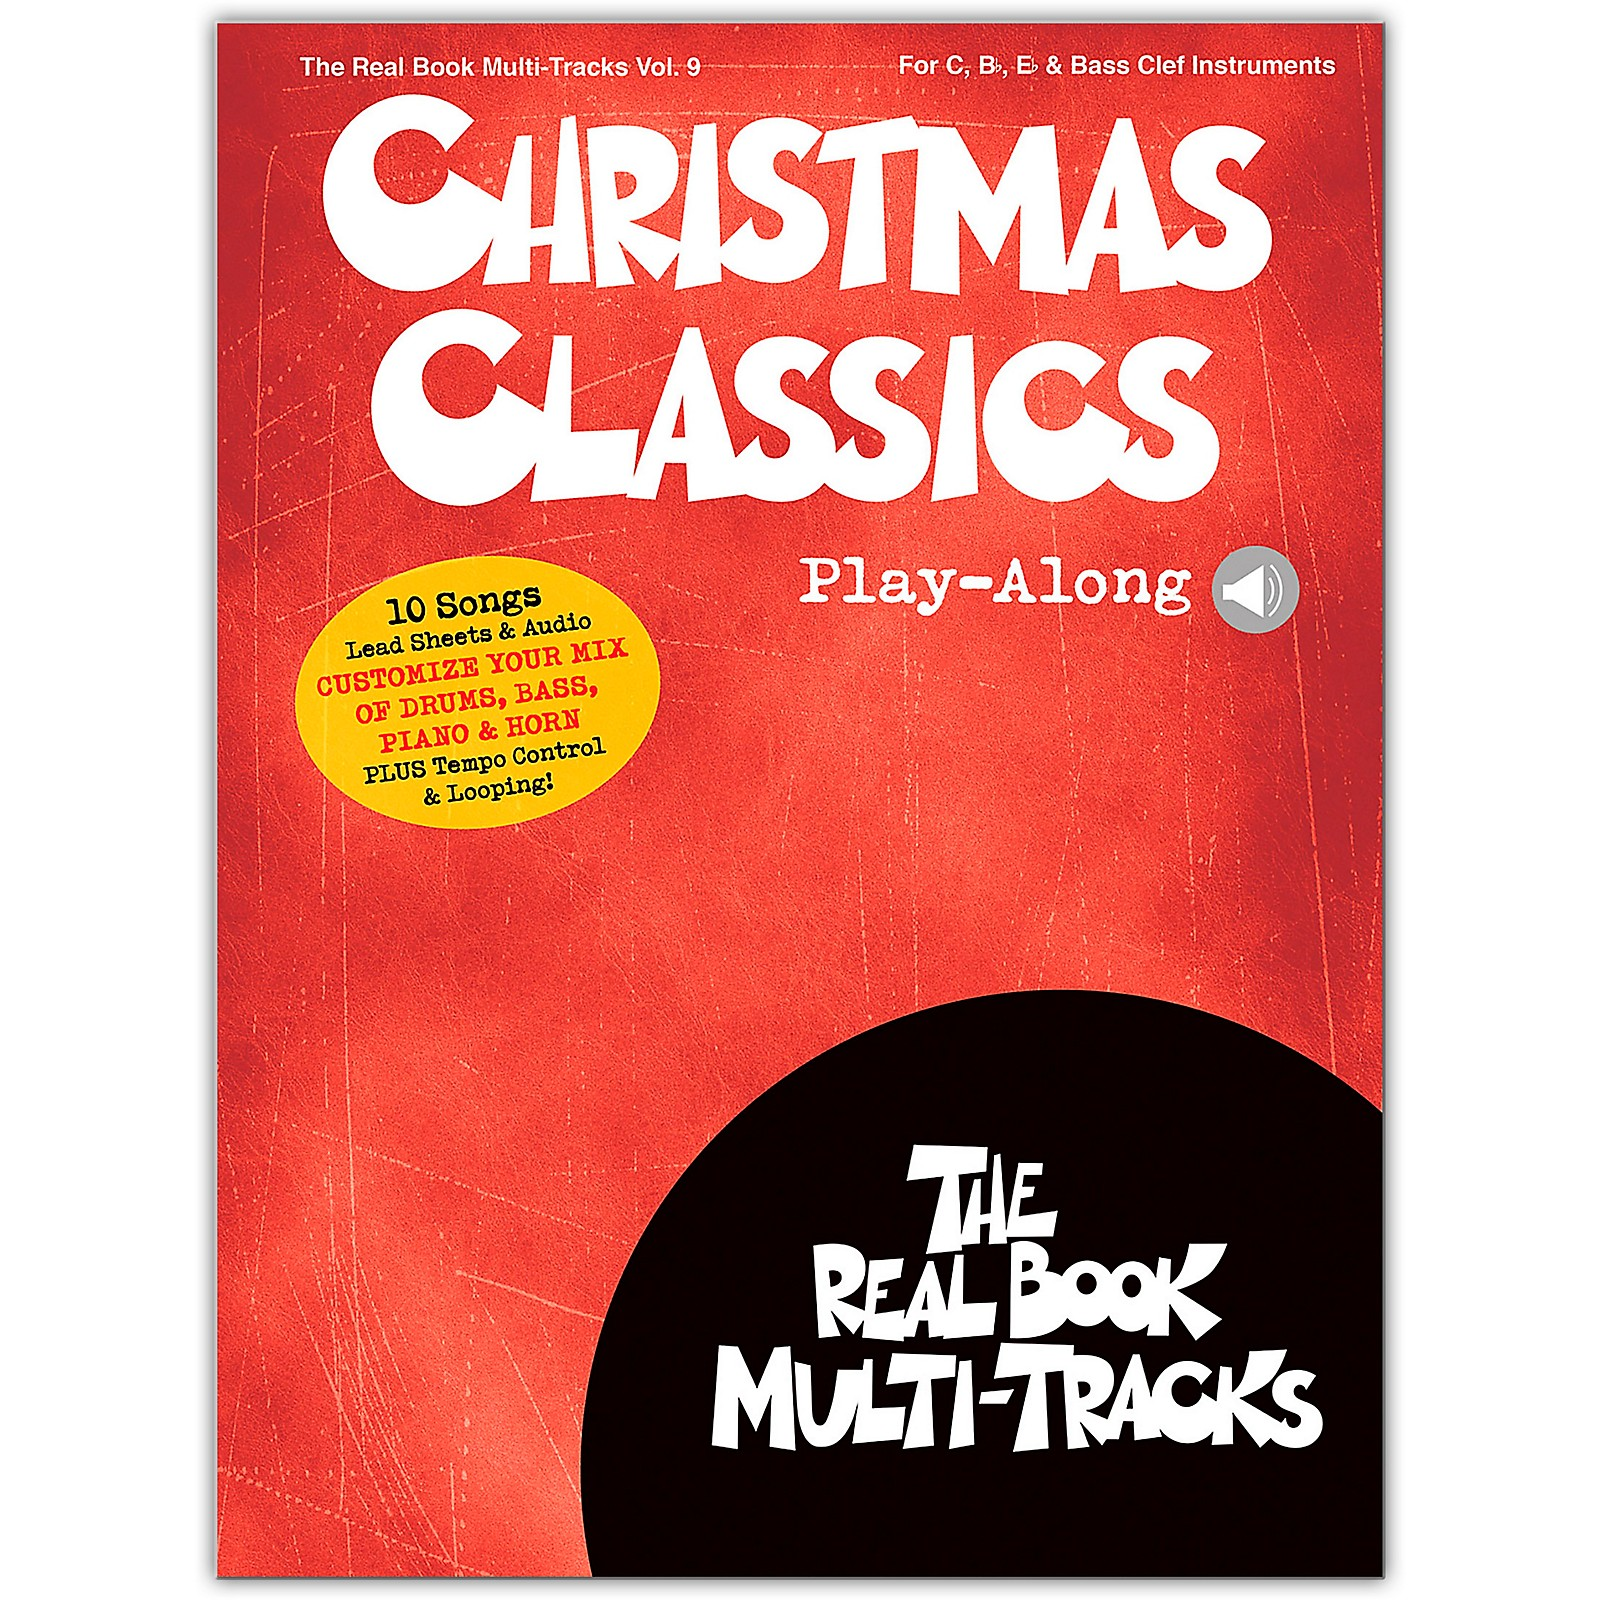 Hal Leonard Christmas Classics Play-Along Real Book Multi-Tracks Volume 9 Book/Audio Online